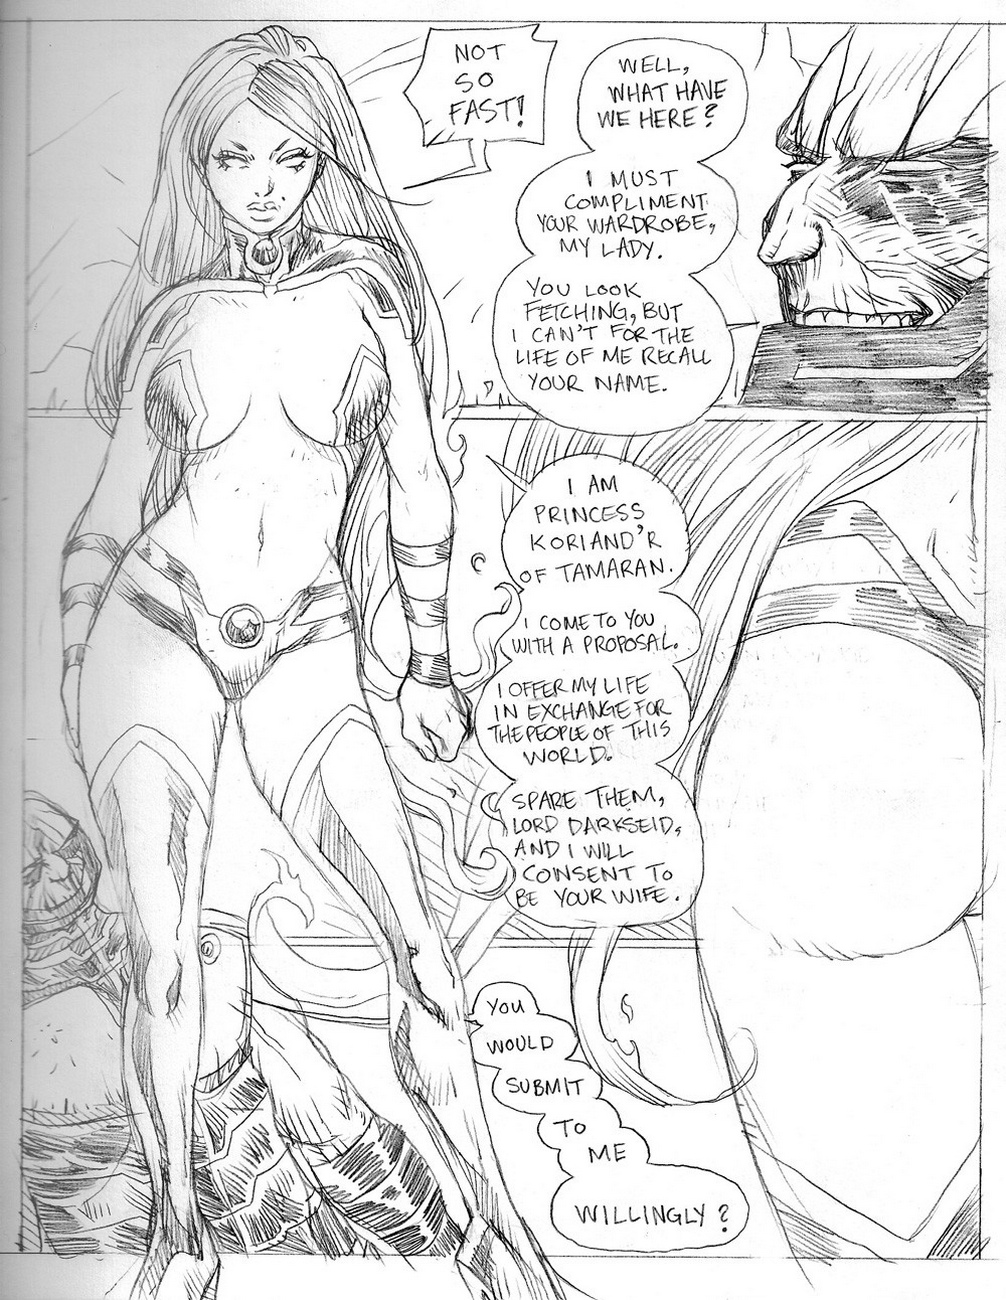 Whores-Of-Darkseid-3-Starfire 5 free sex comic